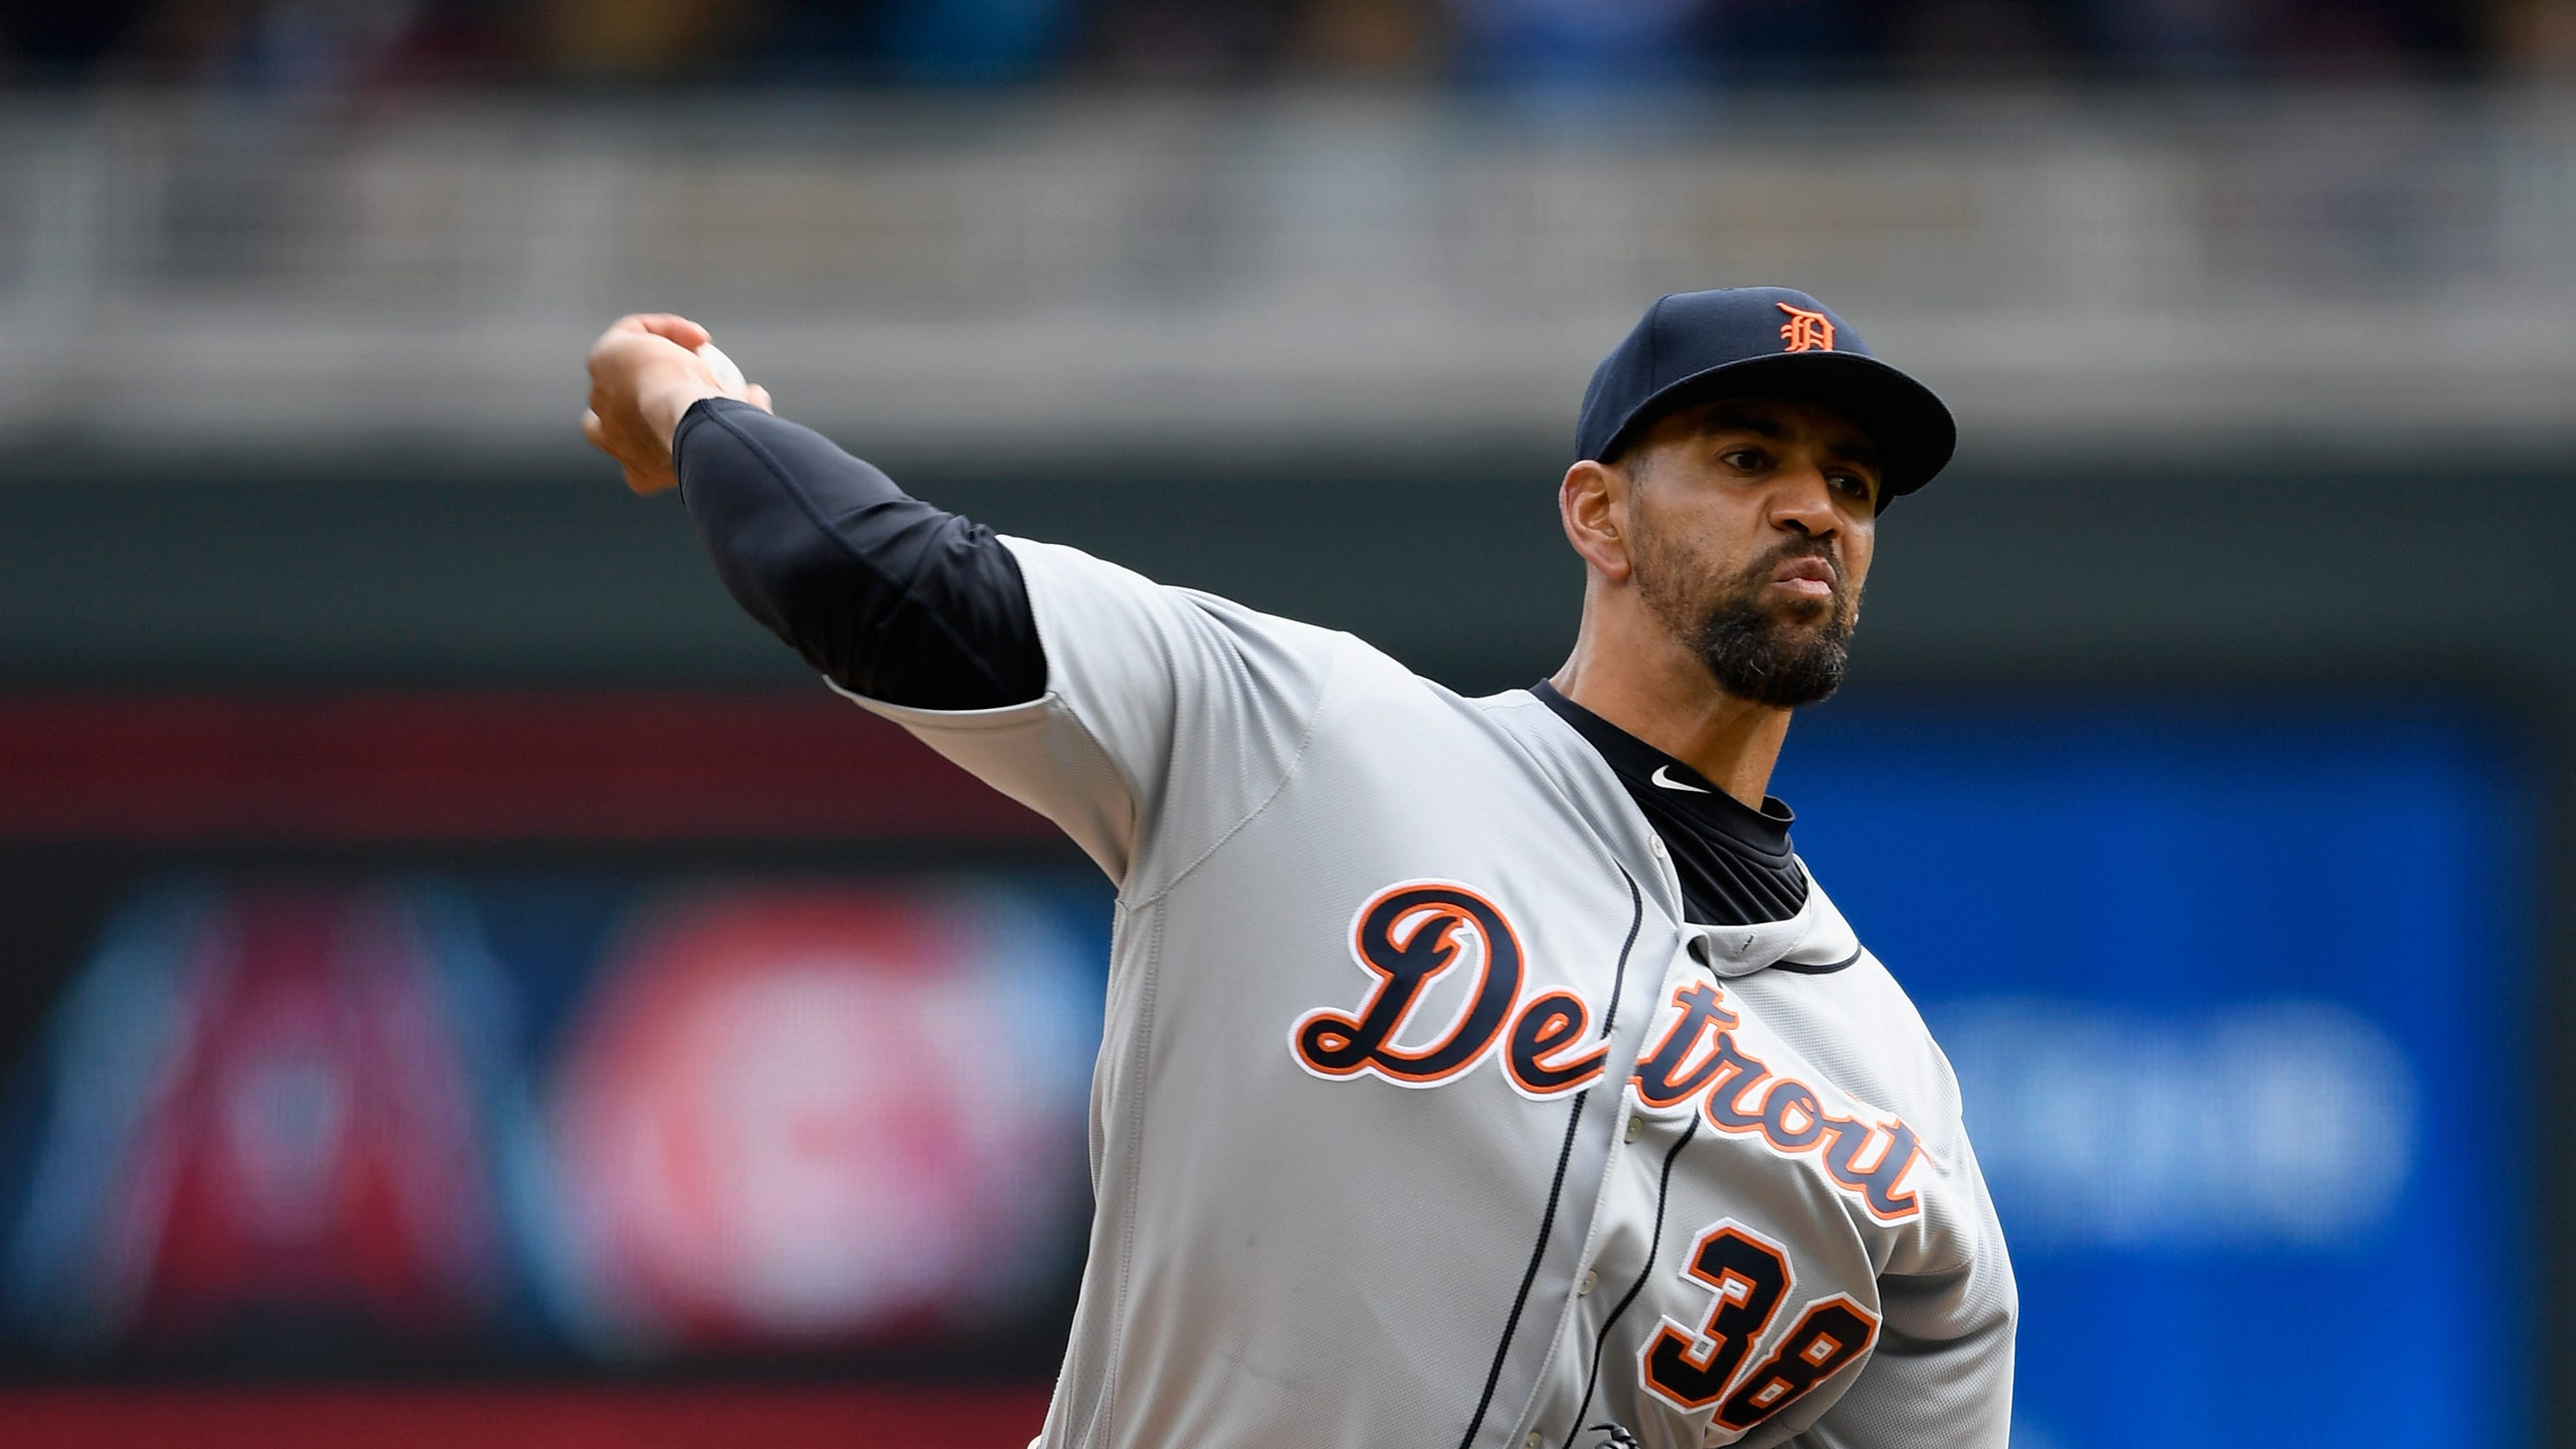 Detroit Minnesota 4-3: Tigers to Twins, thread lose Game